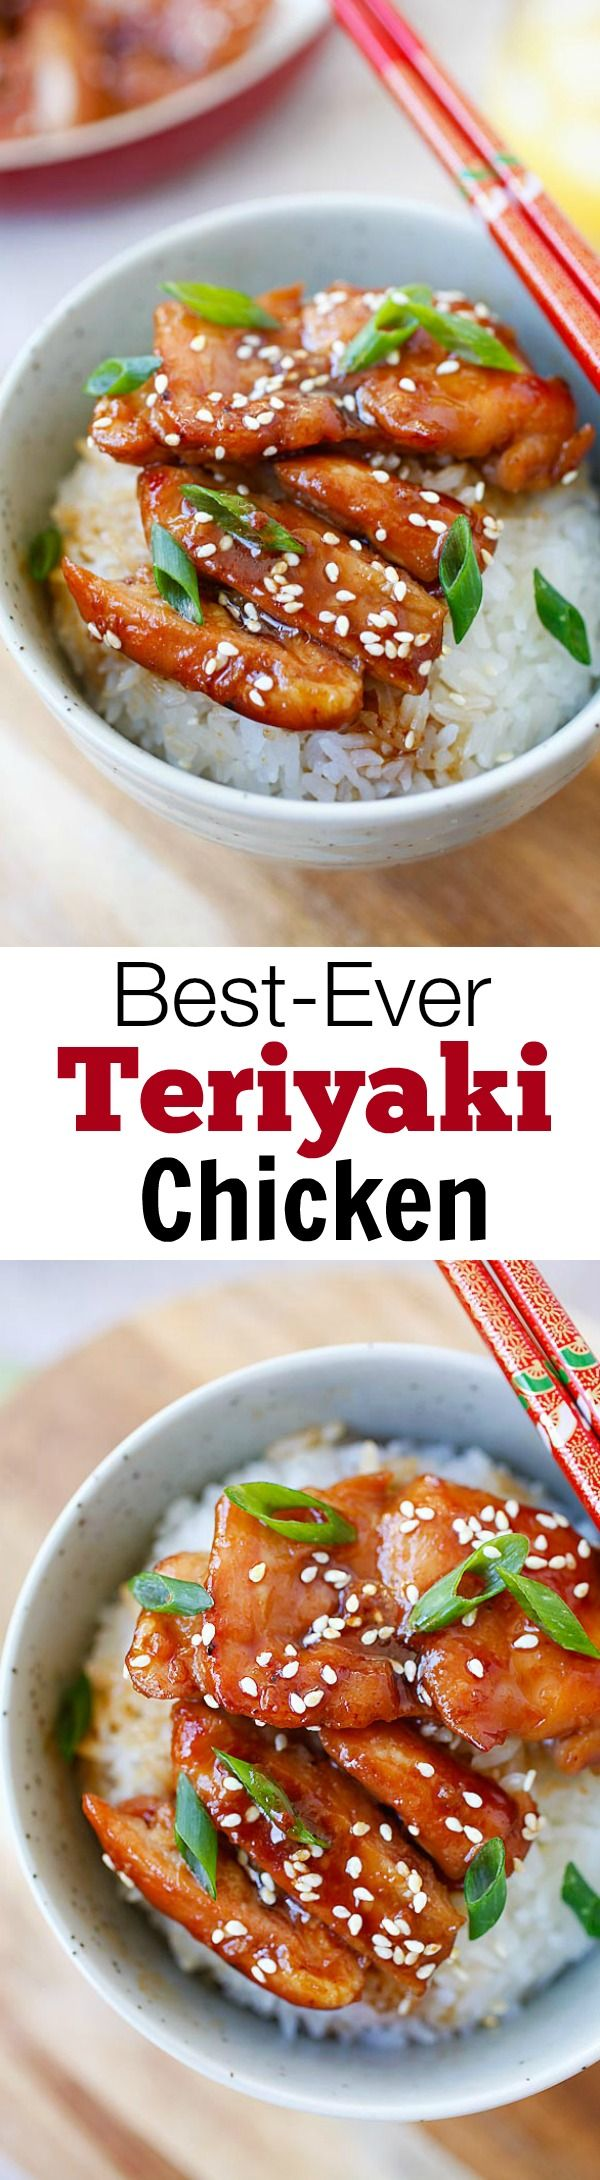 Japan - Teriyaki chicken – the most popular Japanese chicken dish. Learn how to make teriyaki chicken with this easy 30-min recipe with only four ingredients | rasamalaysia.com